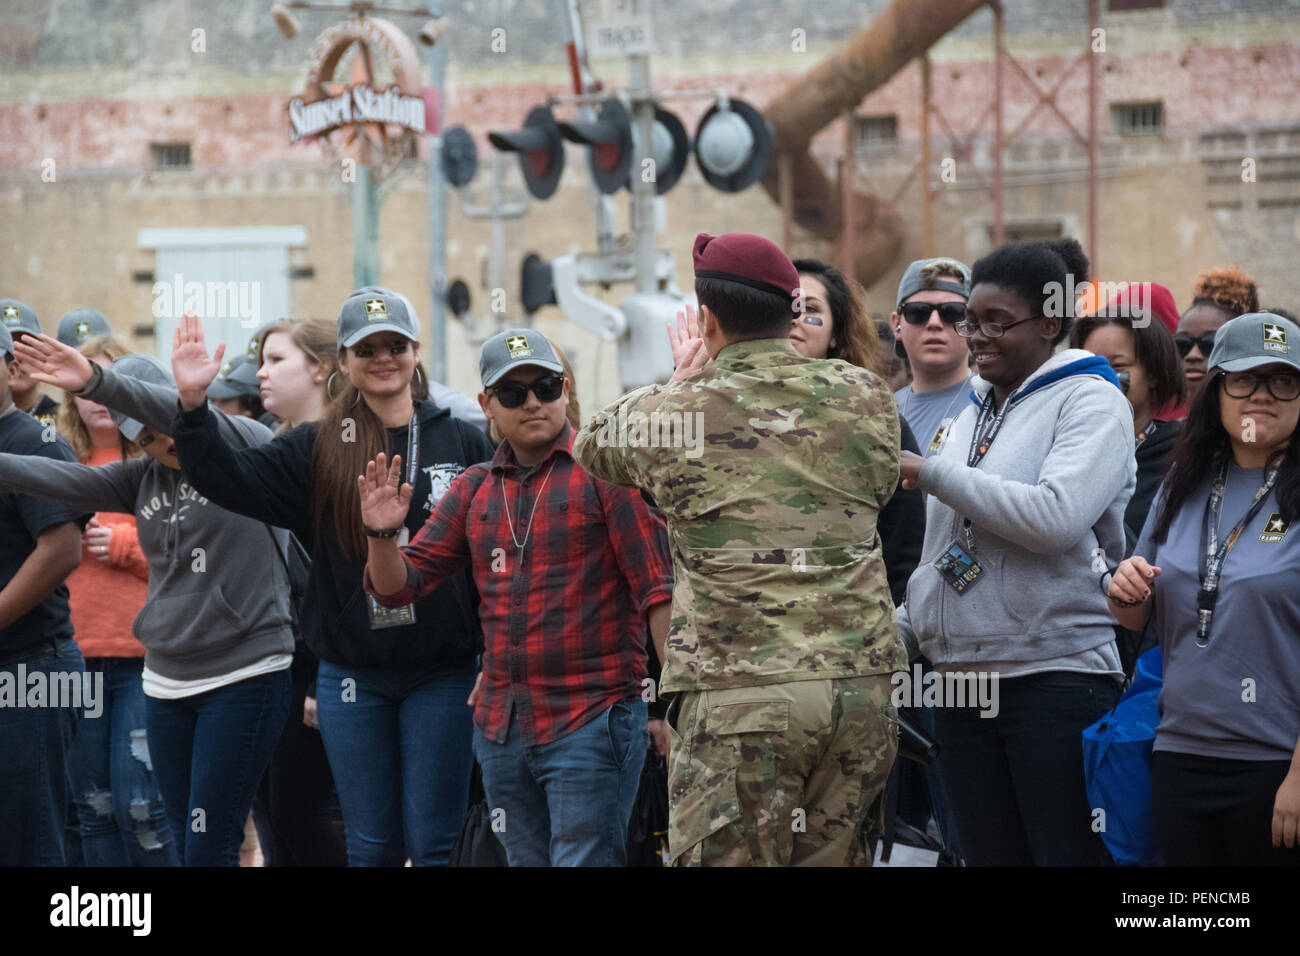 Army All-American Bowl Soldier Mentor, Staff Sgt. Ryann Sartor, with USASOC's 95th Civil Affairs, runs through a crowd of high students visiting the Army Experience Zone at Sunset Station in San Antonio. The Army All-American Bowl airs live on NBC at 1 p.m., EST. - Stock Image